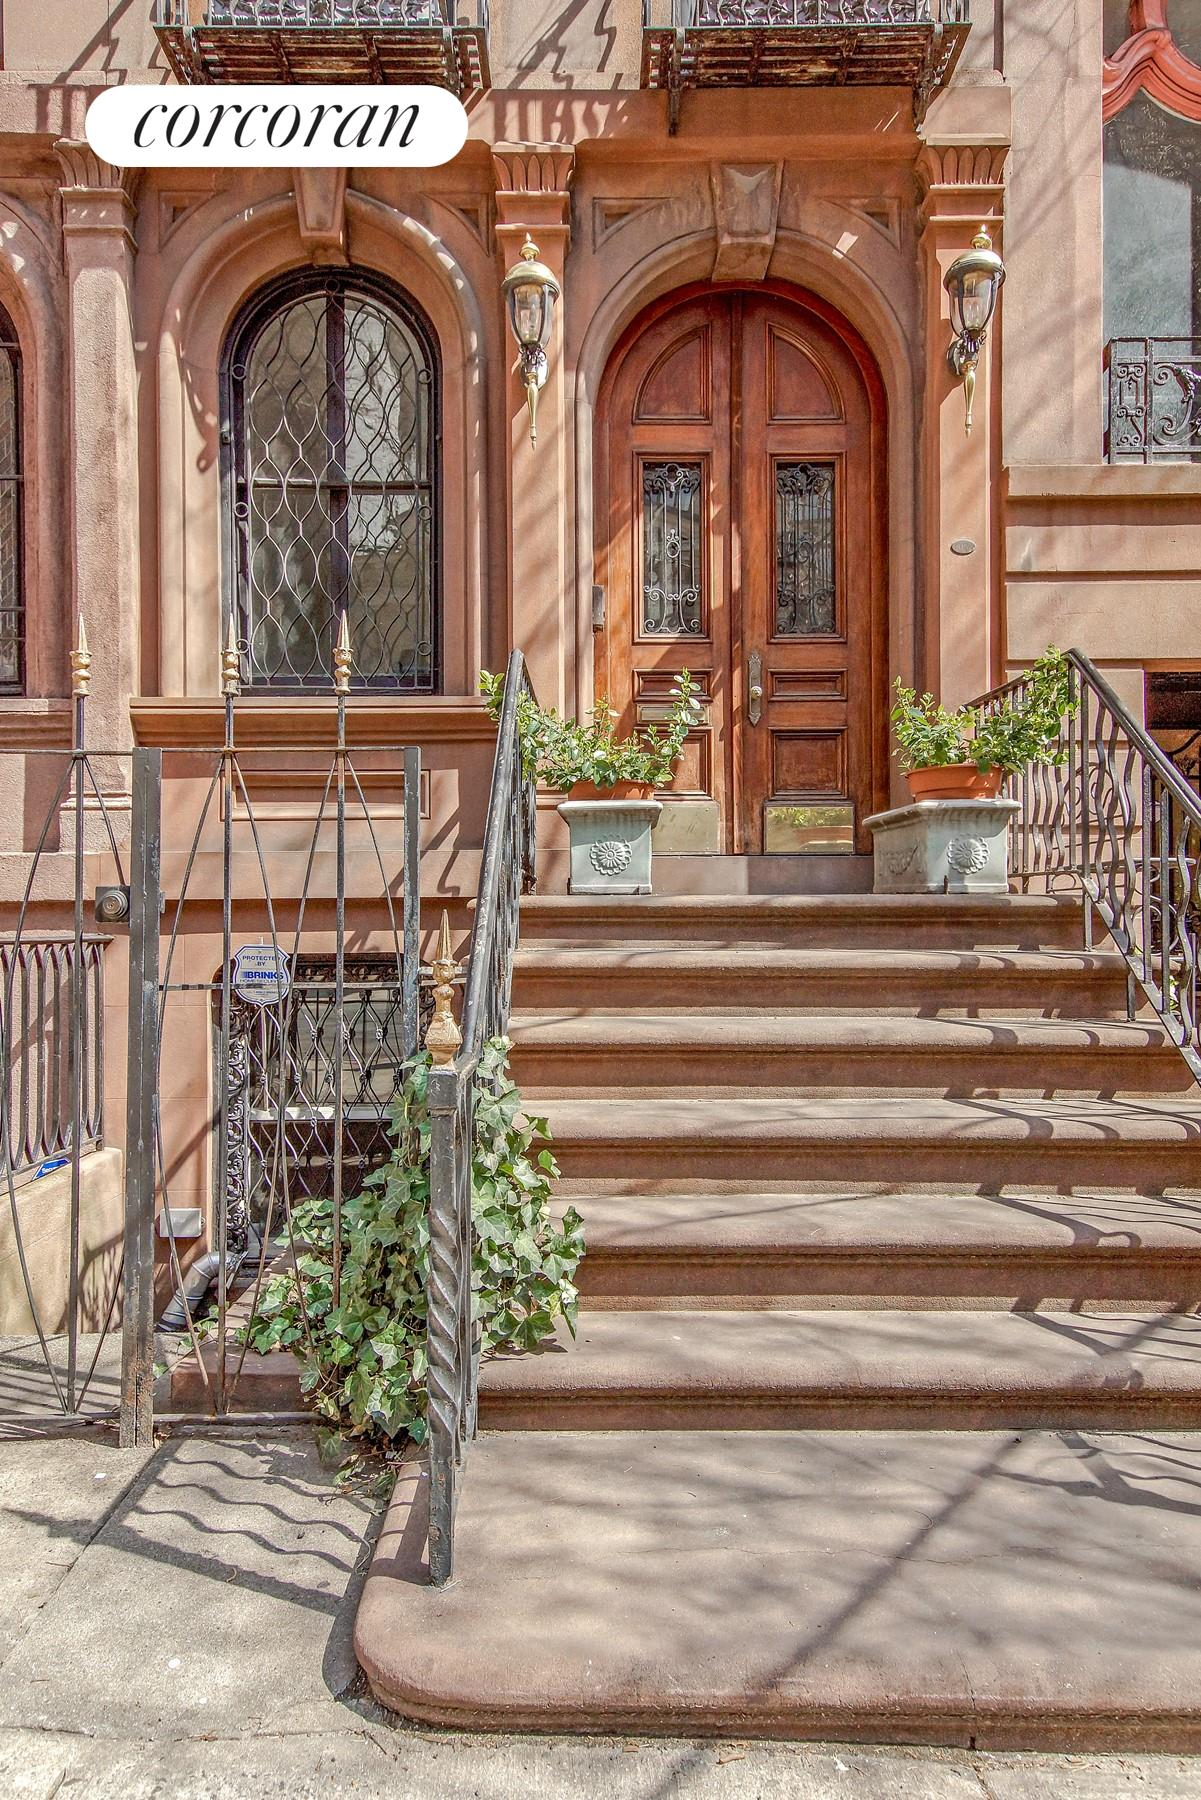 Single Family Home for Sale at 115 East 35th Street 115 East 35th Street New York, New York 10016 United States